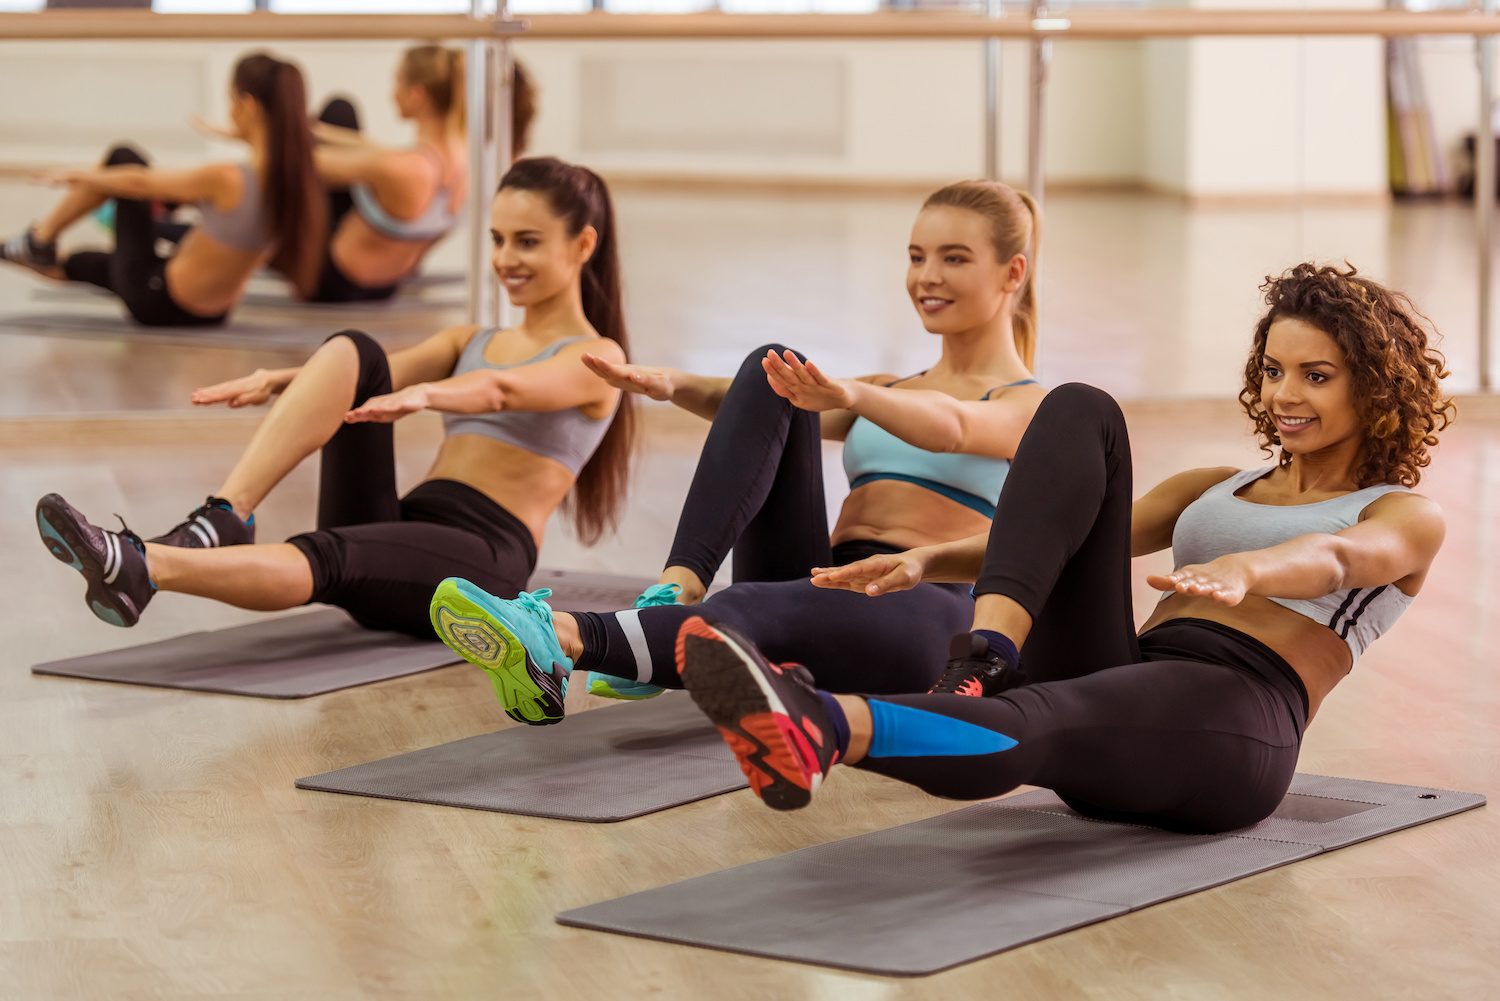 Cardio Sculpt Class at Infinity Fitness in Falmouth, MA